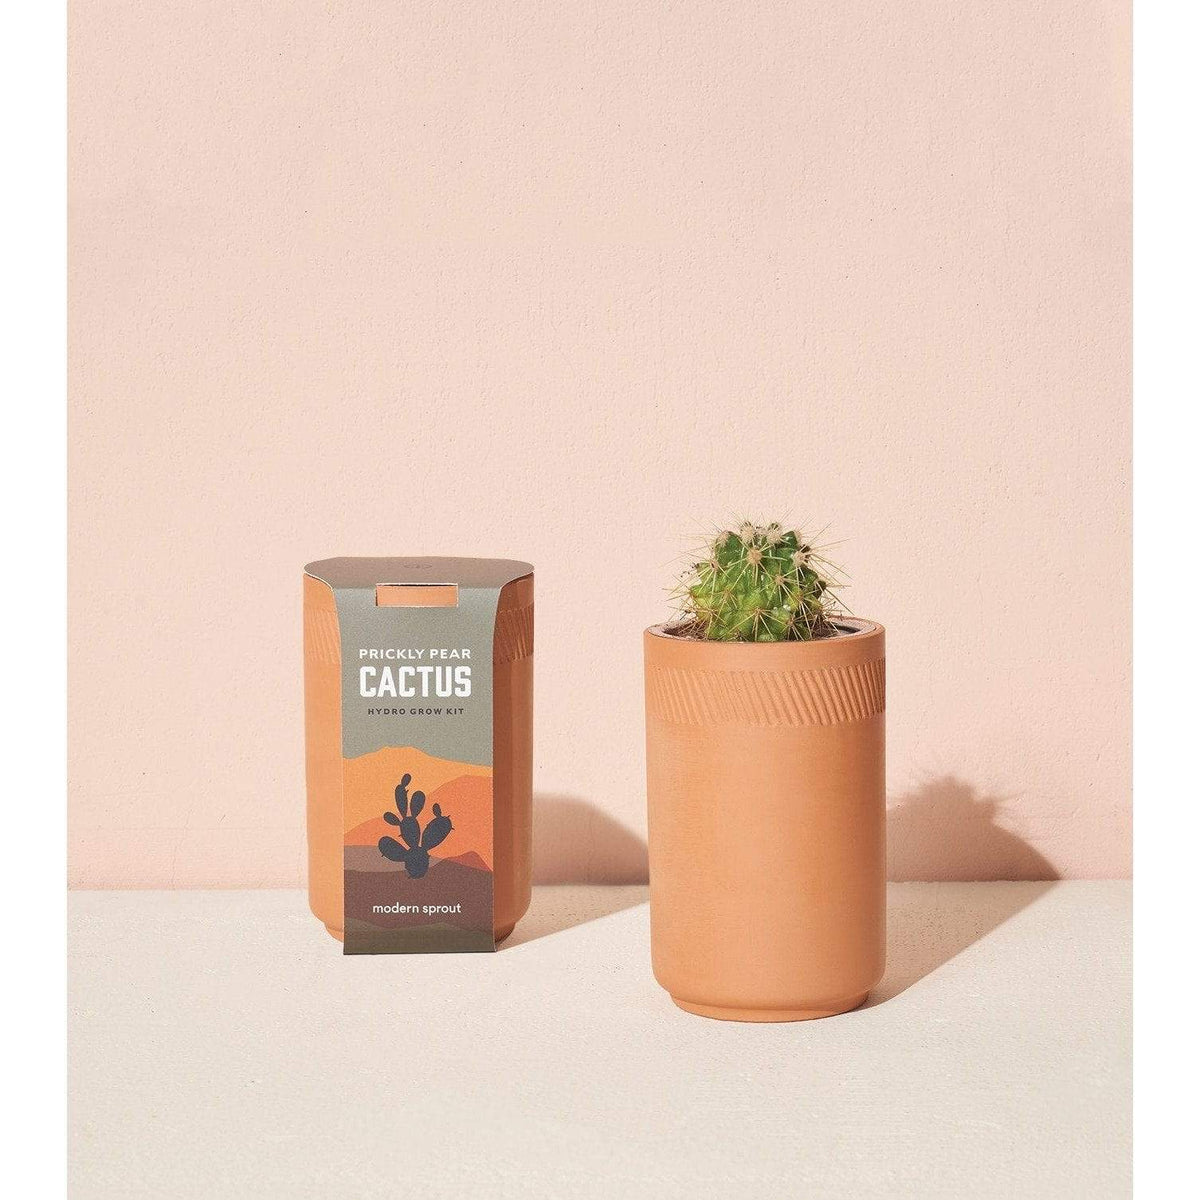 Terracotta Indoor Hydroponic Kit - Prickly Pear Cactus